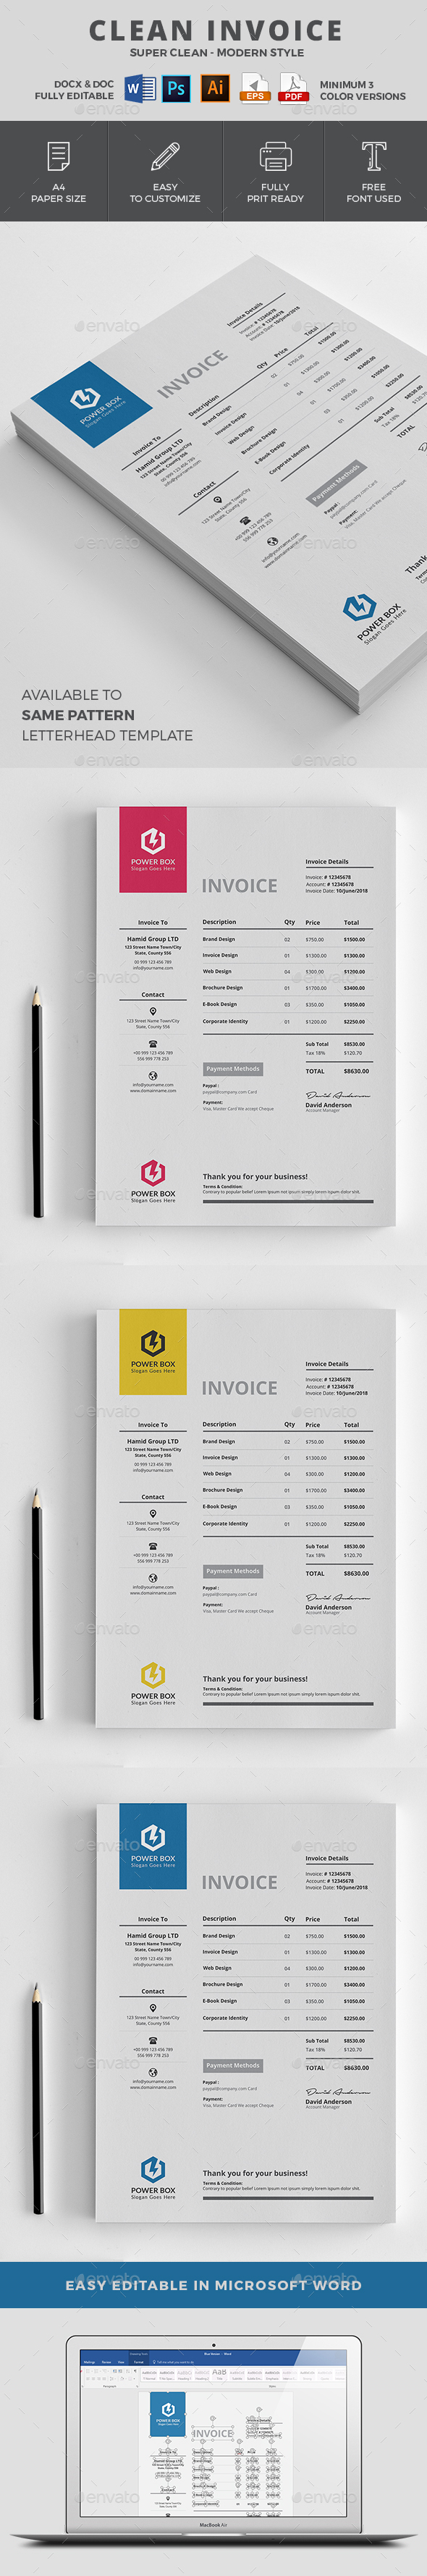 Invoice   Proposals  Minimal and Template  Invoice   Proposals   Invoices Stationery   Minimal Invoice Template   5  color variations I